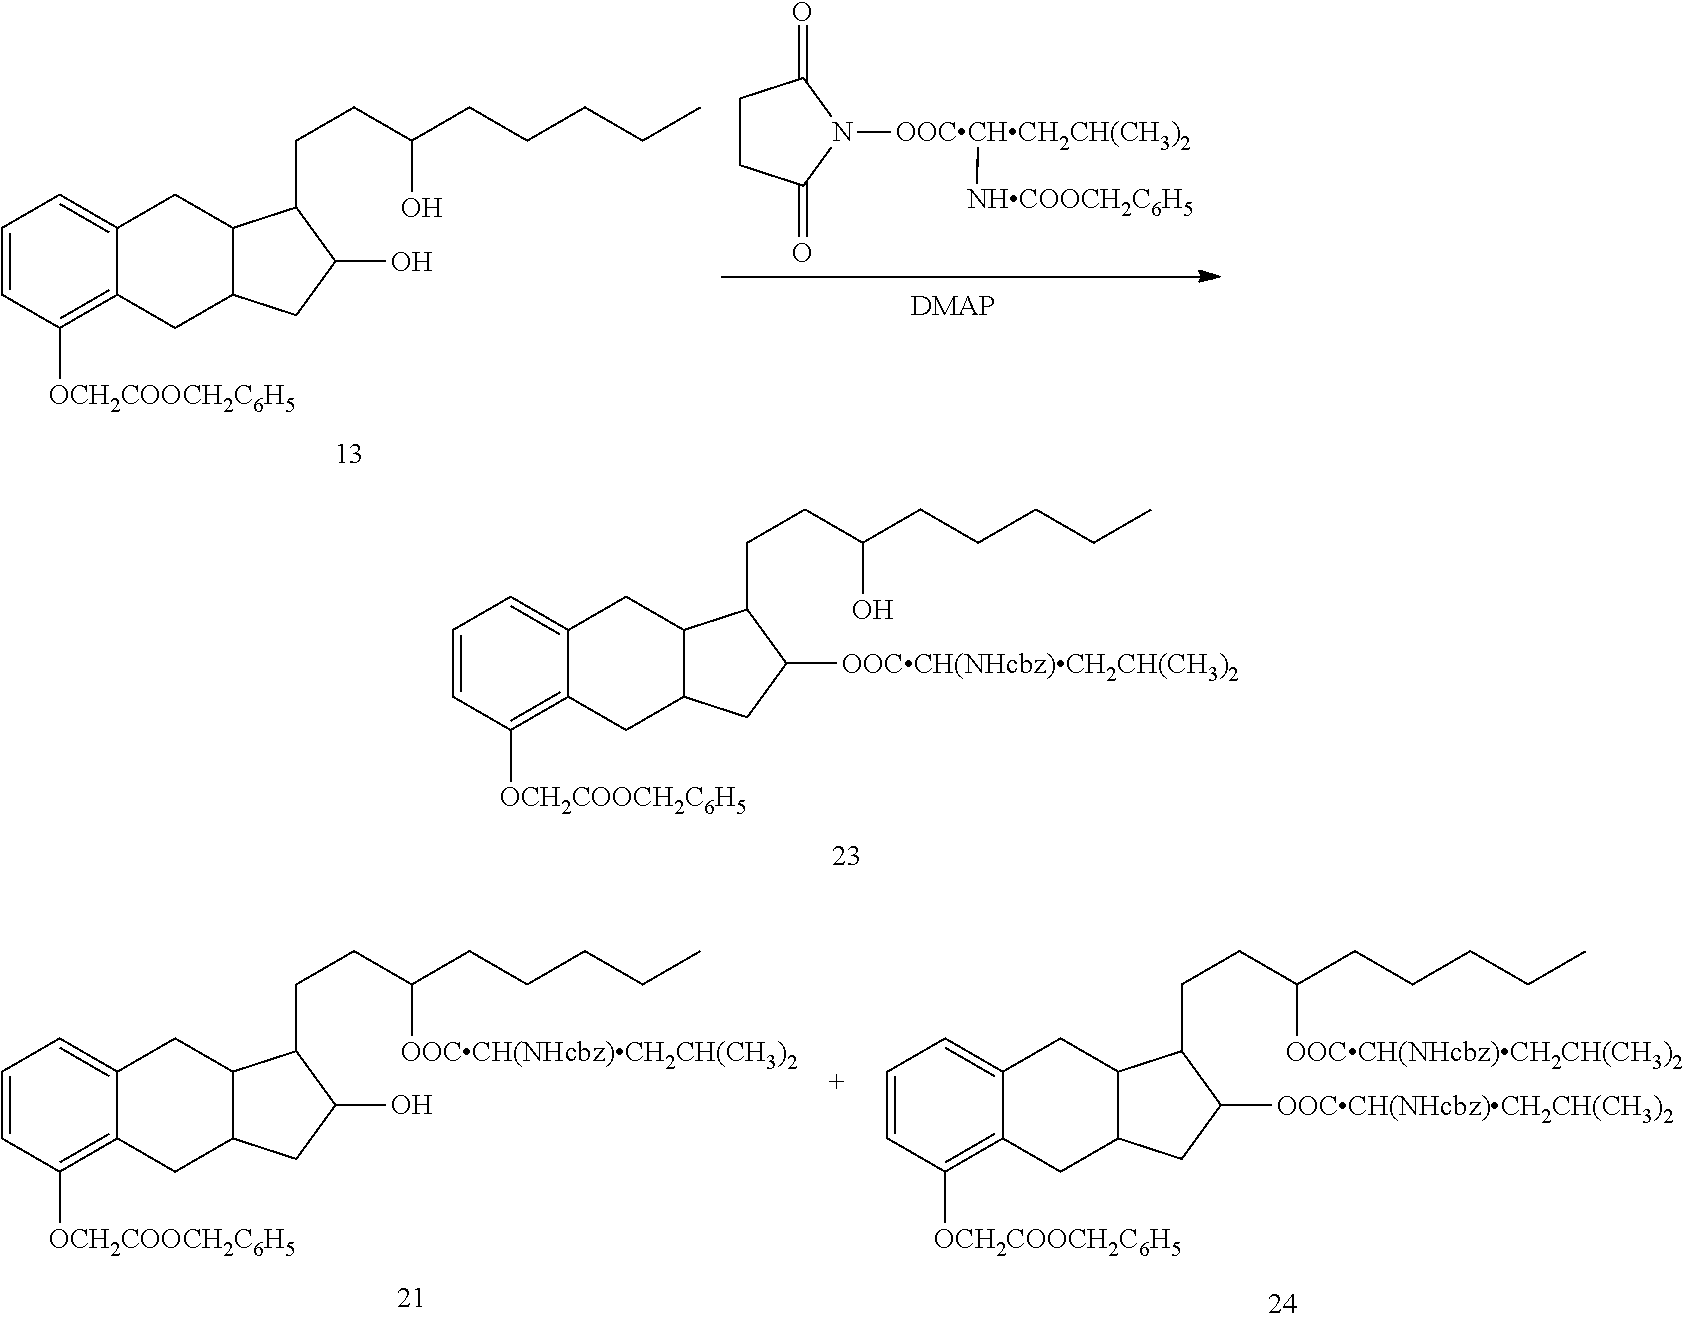 ester sythesis This review discusses the myriad of reaction systems employed in ester production catalyzed by lipases enzyme behavior in reaction systems is a consequence of certain structural patterns typical of lipases.